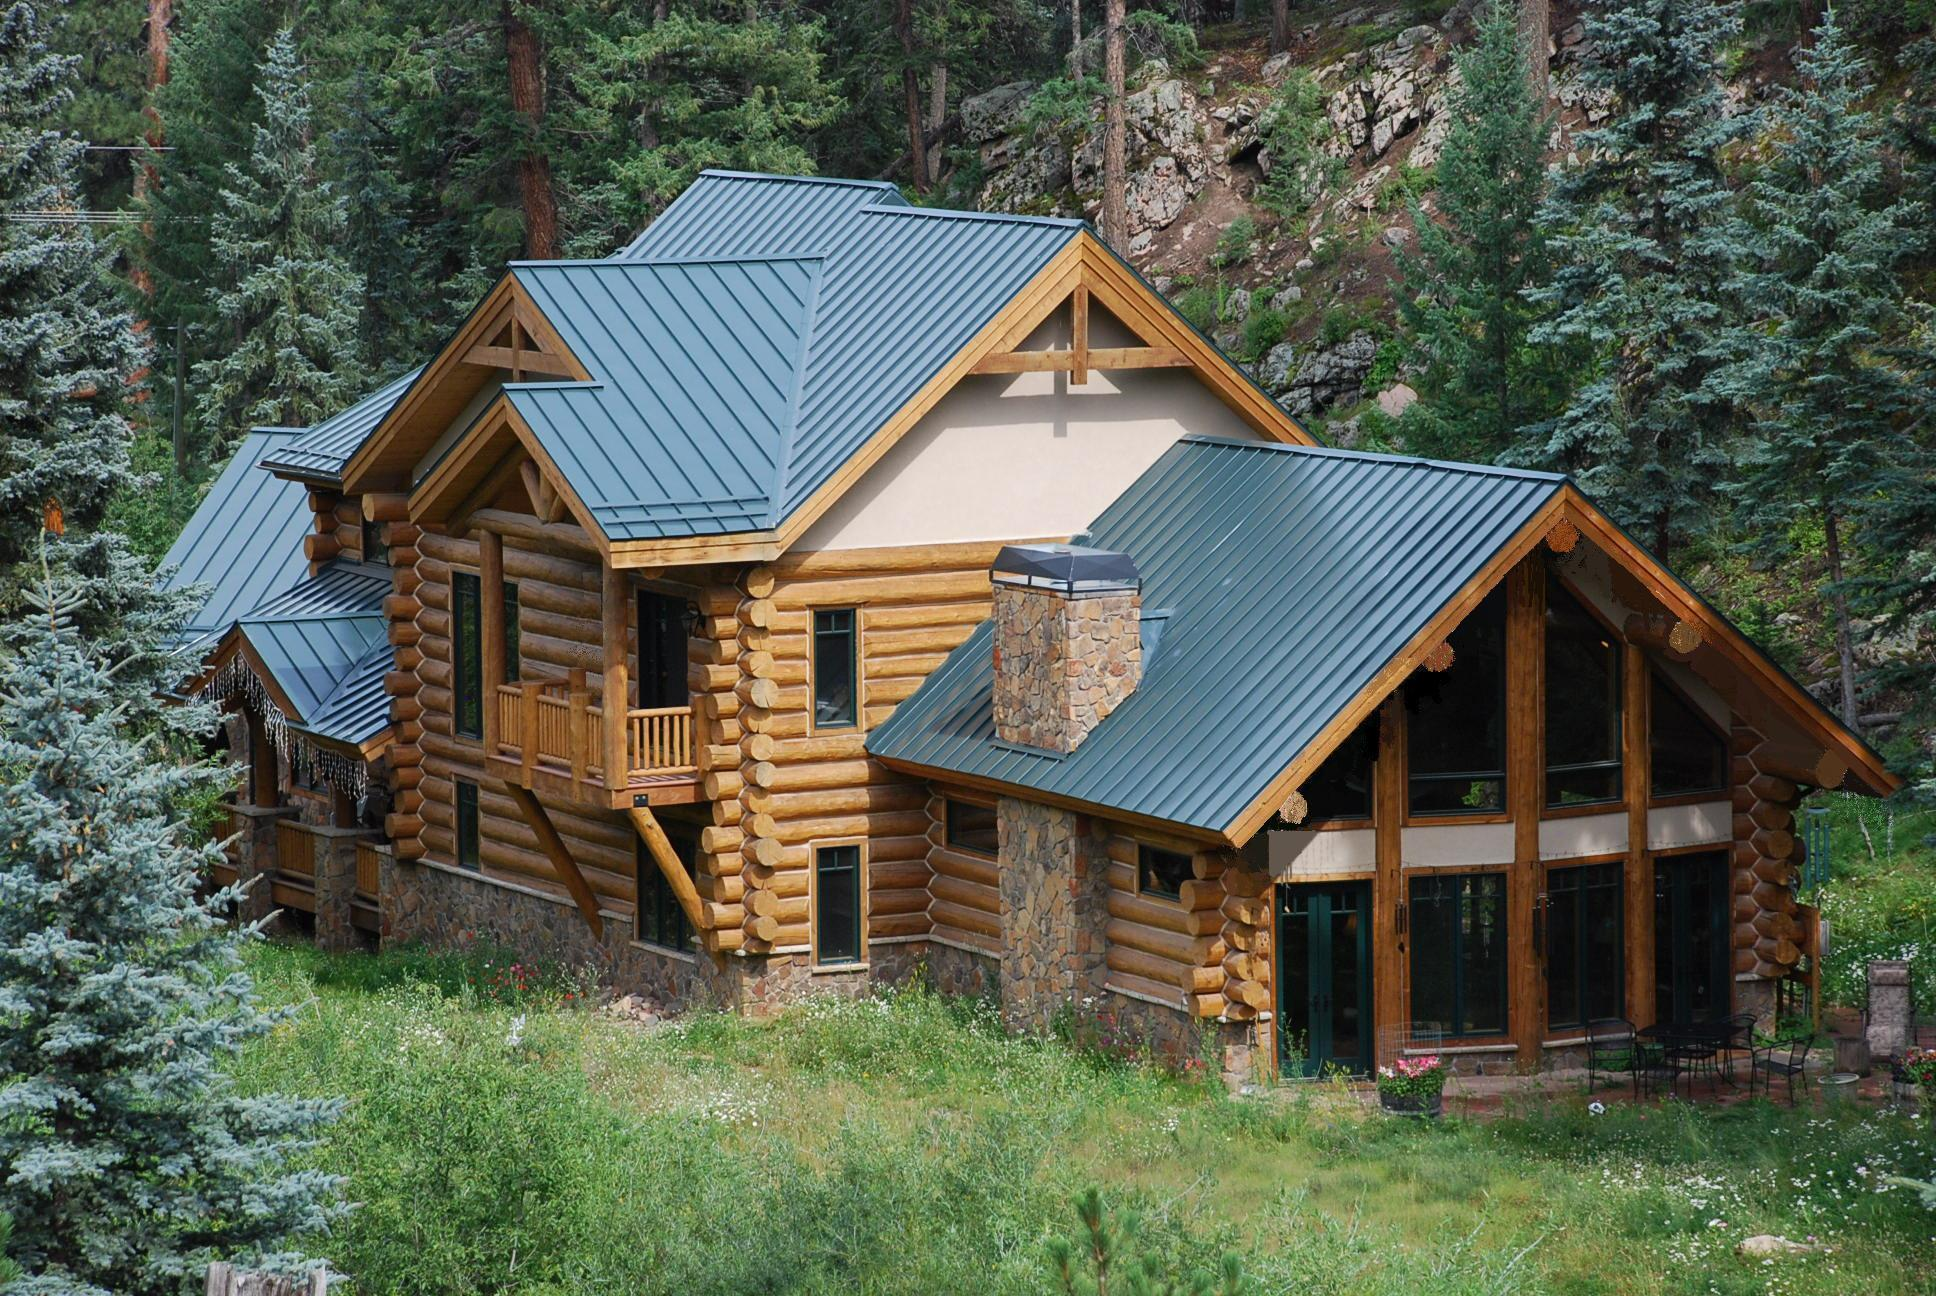 Exterior pictures custom handcrafted milled log homes for Country log homes